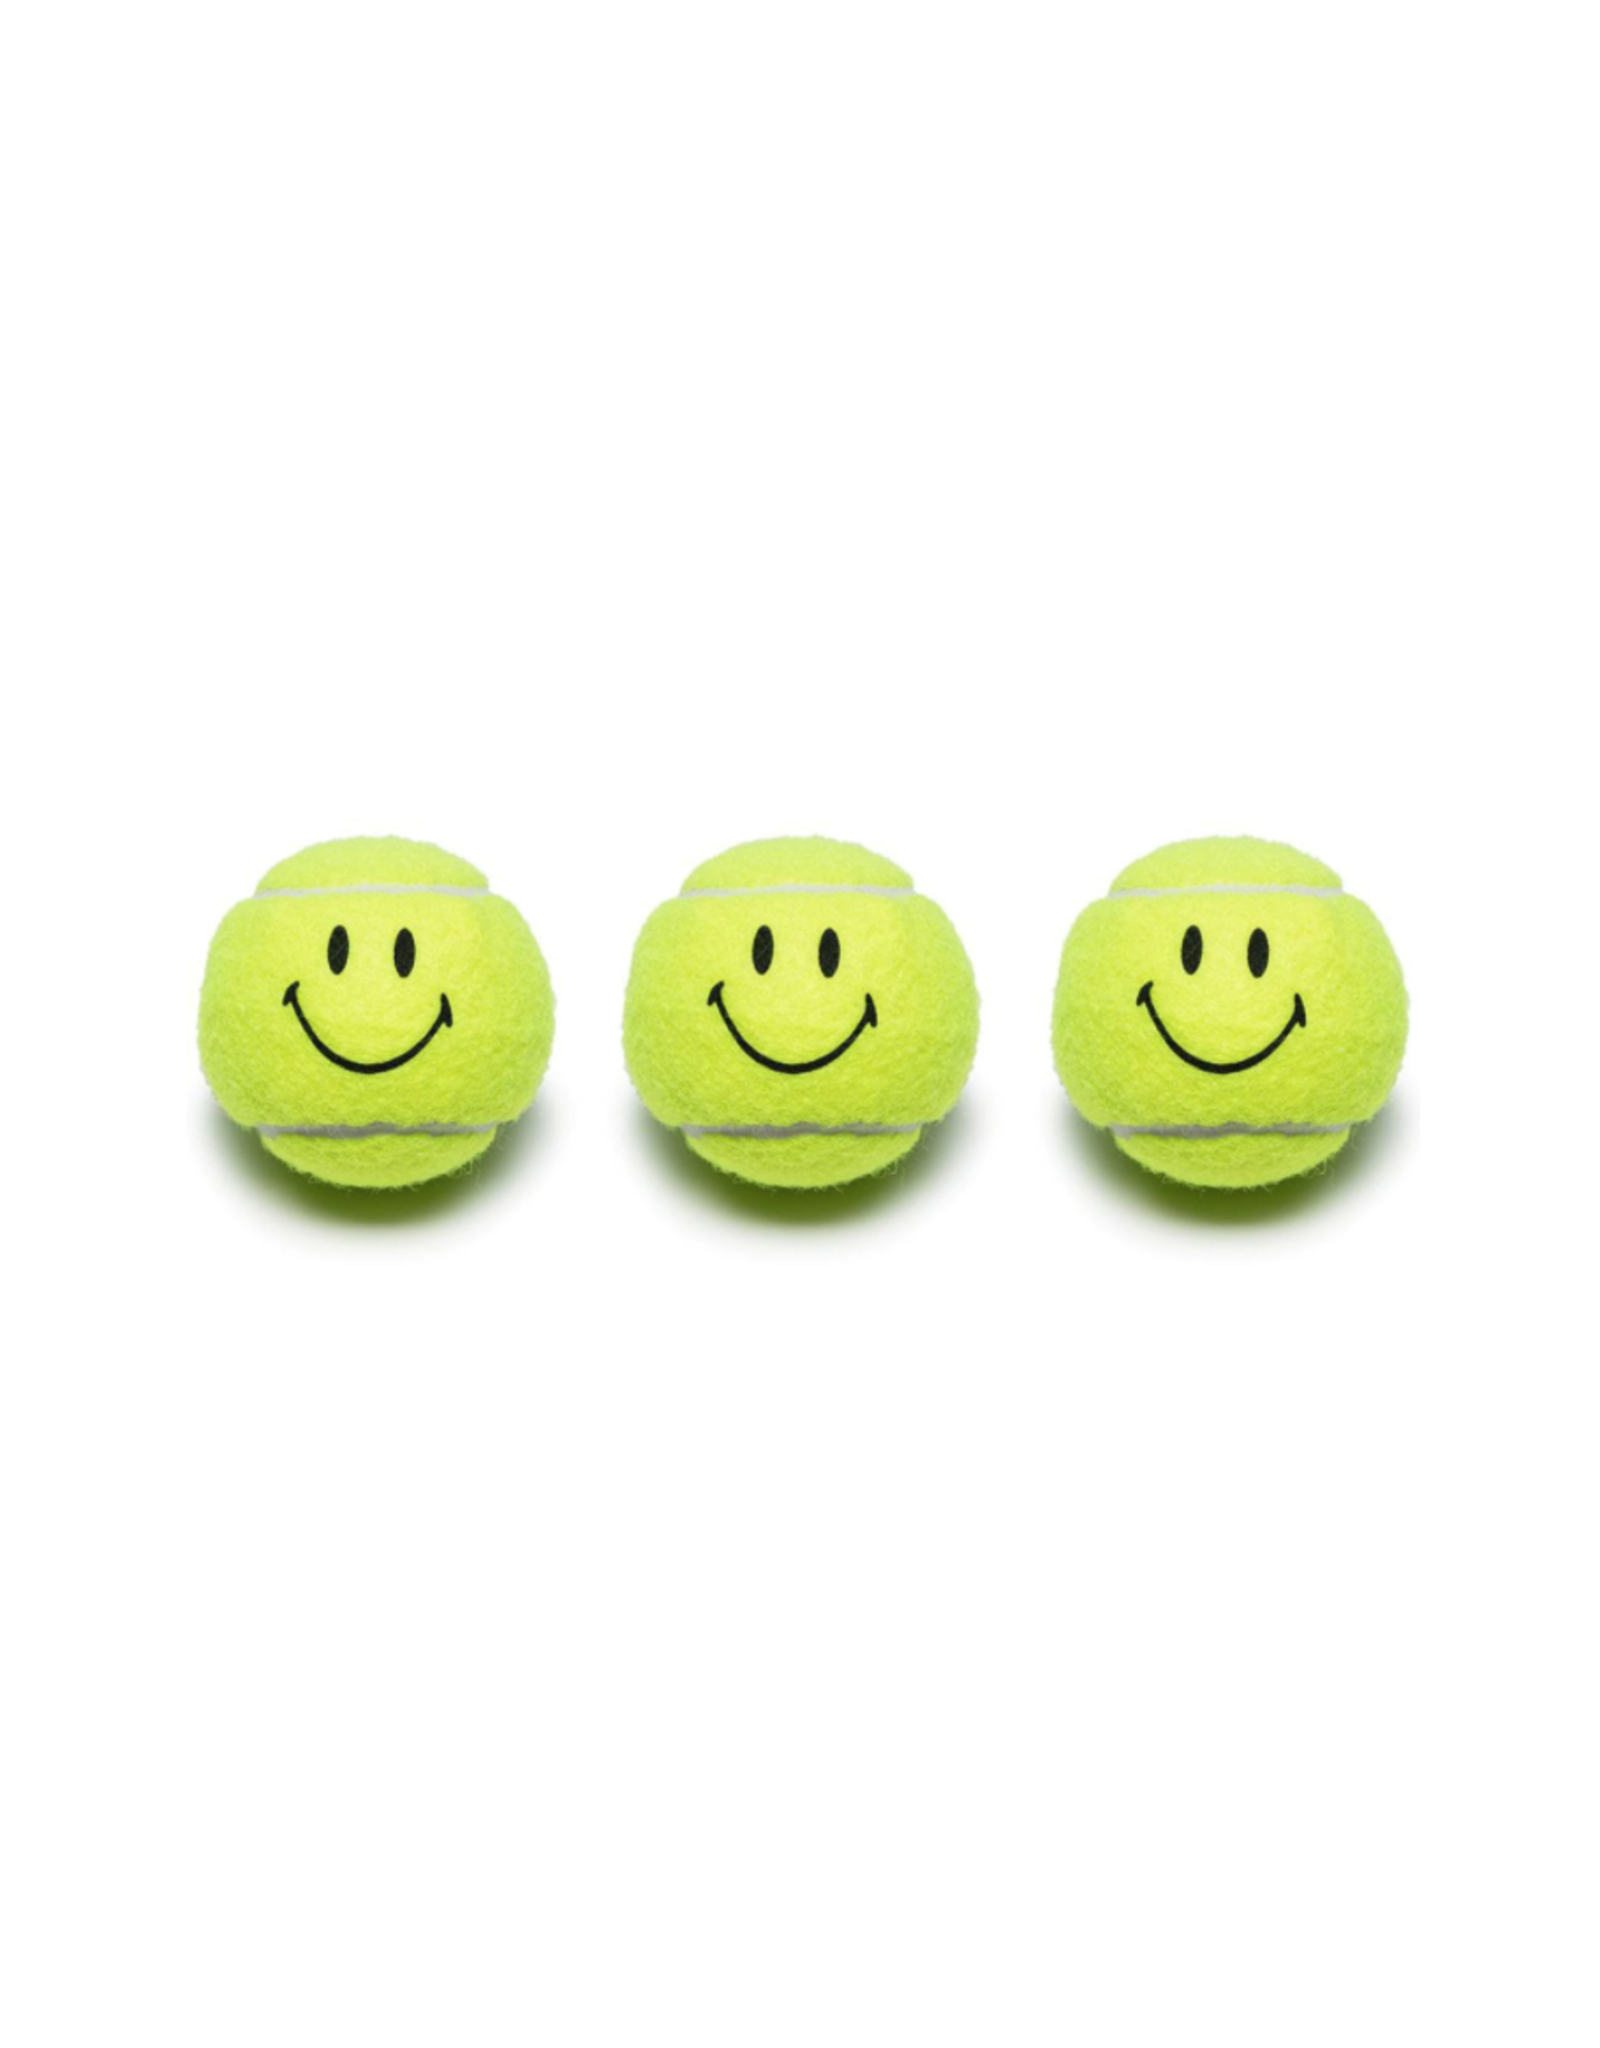 Chinatown Market x Smiley Tennis Ball Multipack